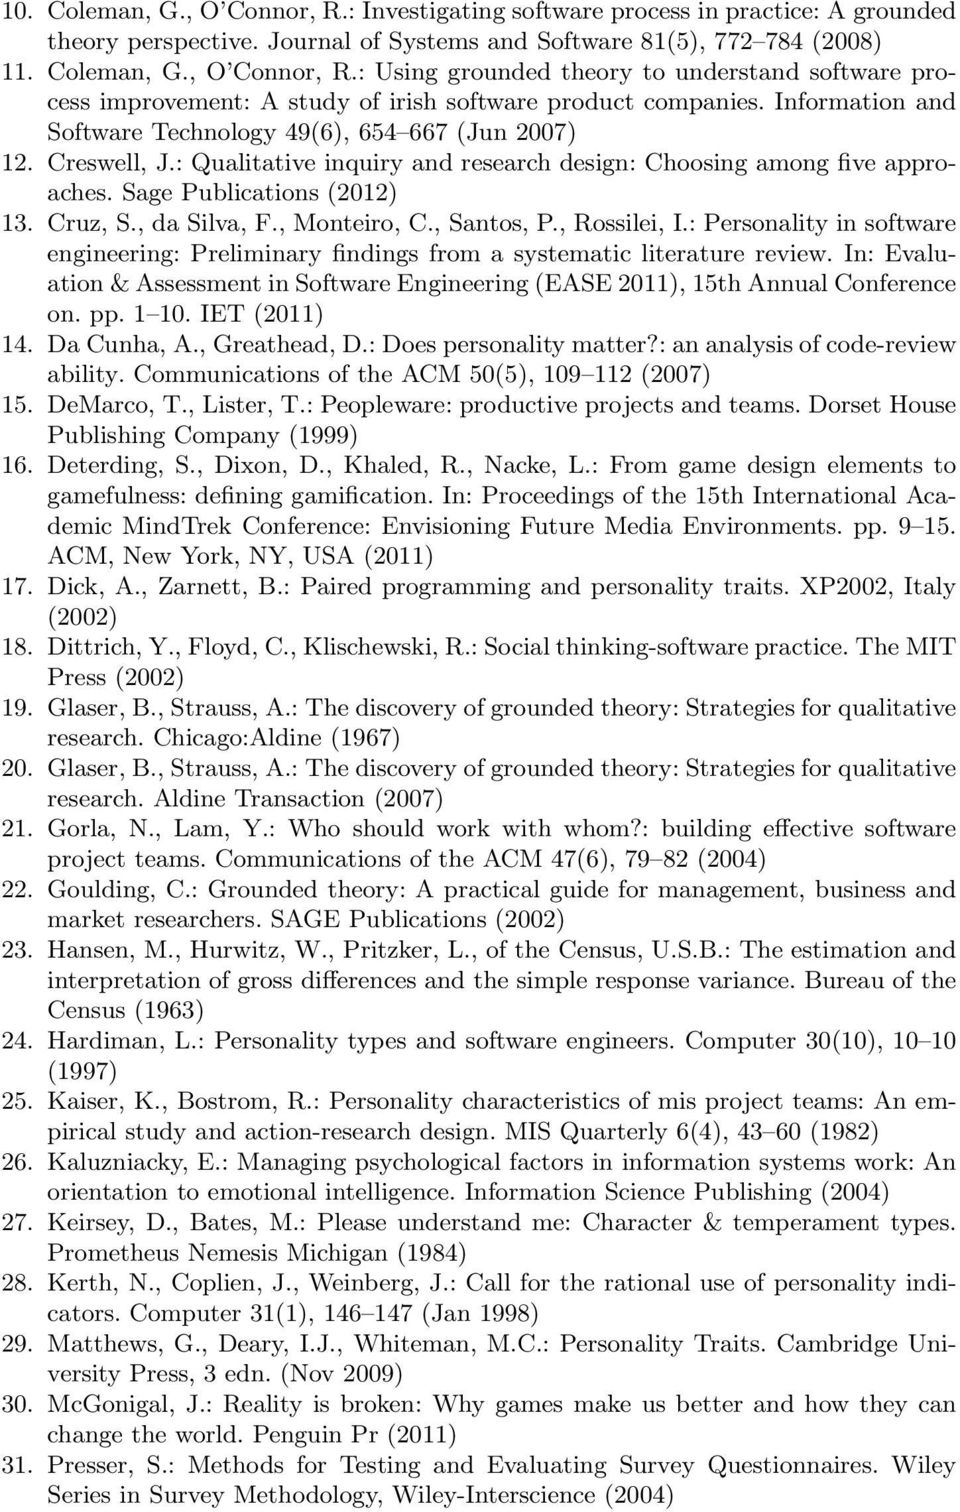 , da Silva, F., Monteiro, C., Santos, P., Rossilei, I.: Personality in software engineering: Preliminary findings from a systematic literature review.